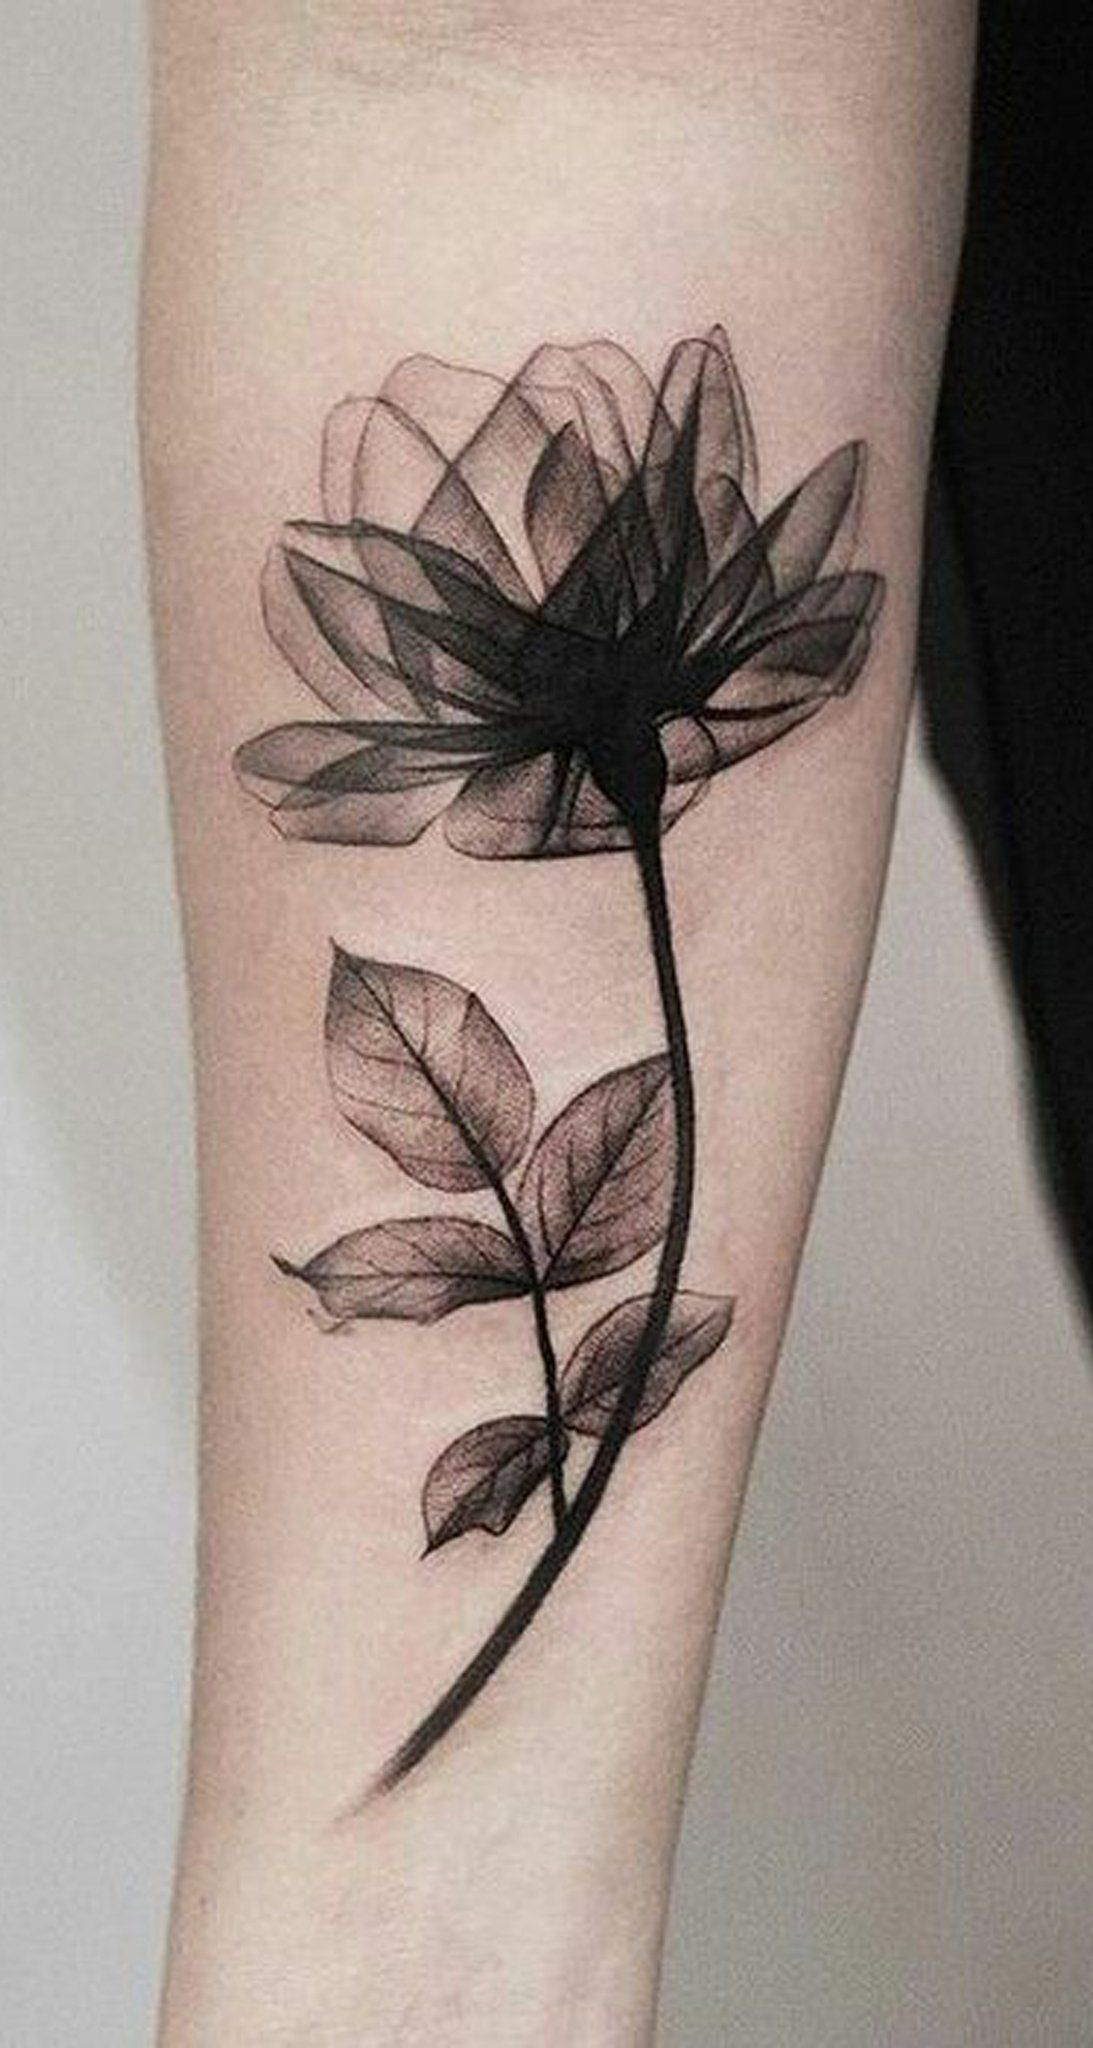 100 of most beautiful floral tattoos ideas tatouage pinterest beautiful black magnolia arm tattoo ideas for women watercolor delicate forearm tat izmirmasajfo